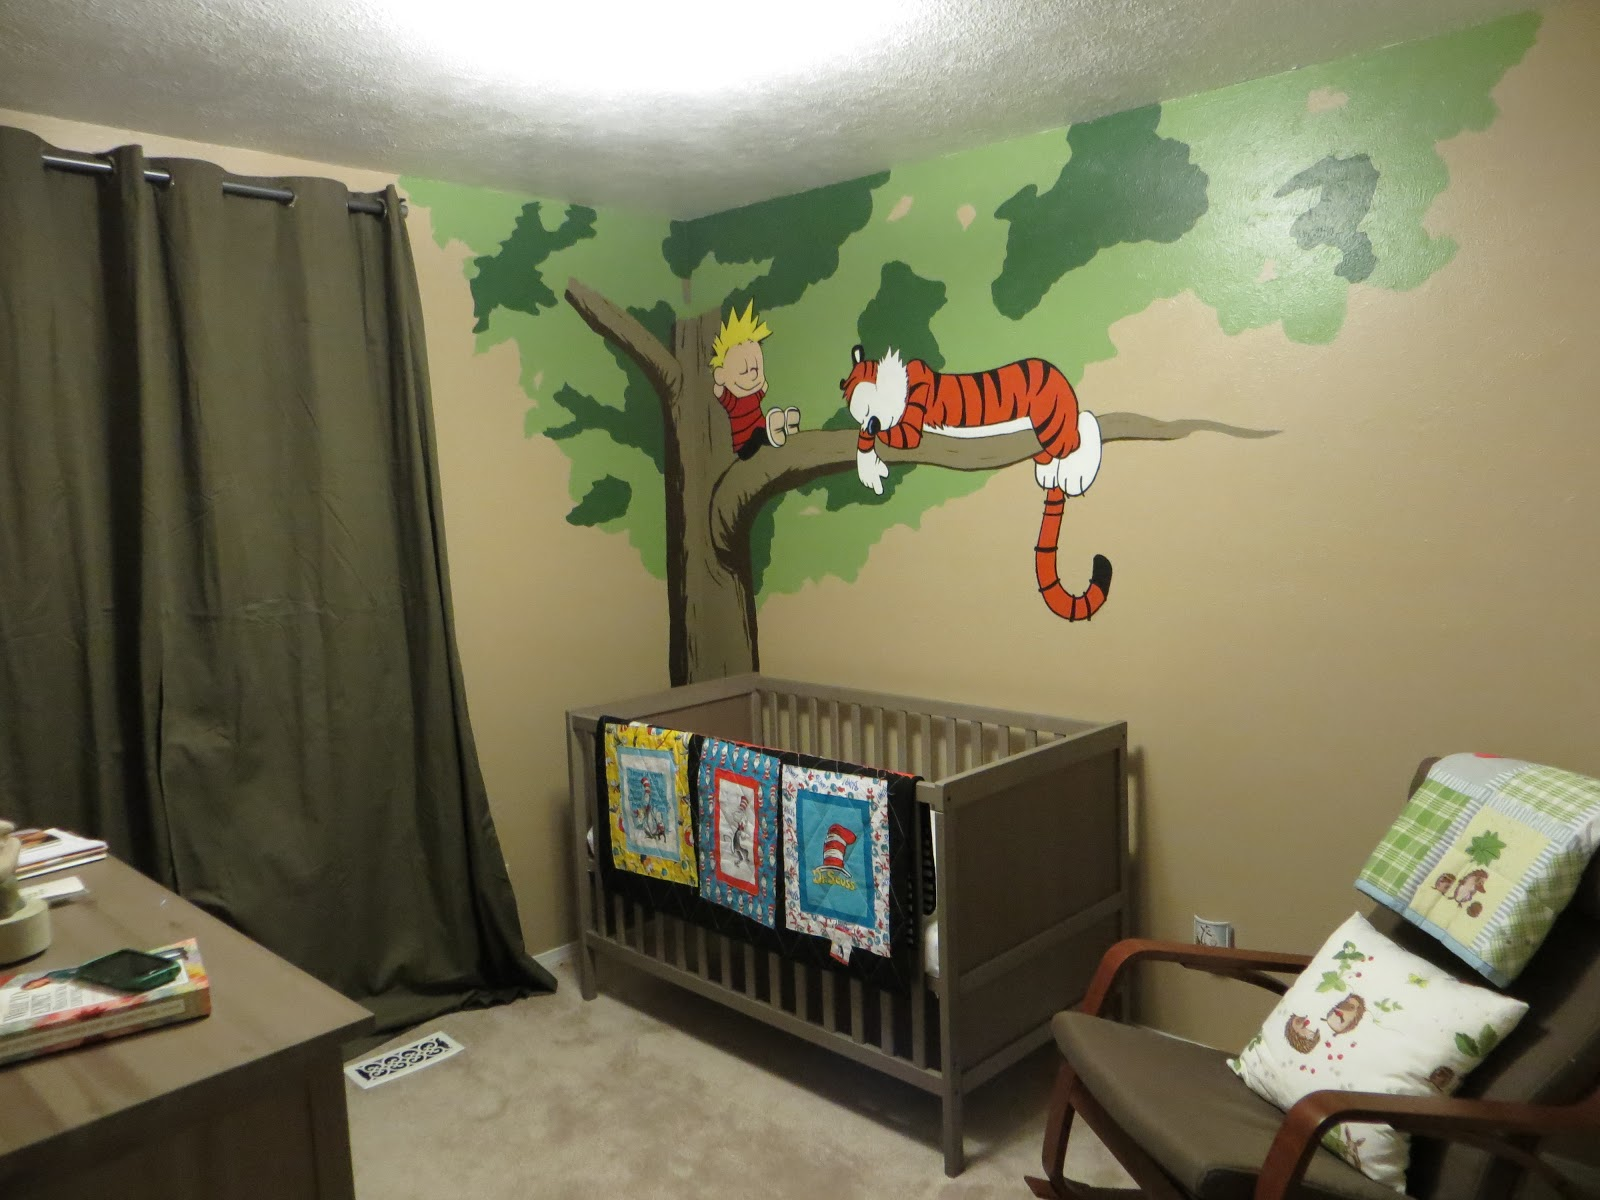 Home decor on pinterest calvin and hobbes wall art and for Calvin and hobbes nursery mural